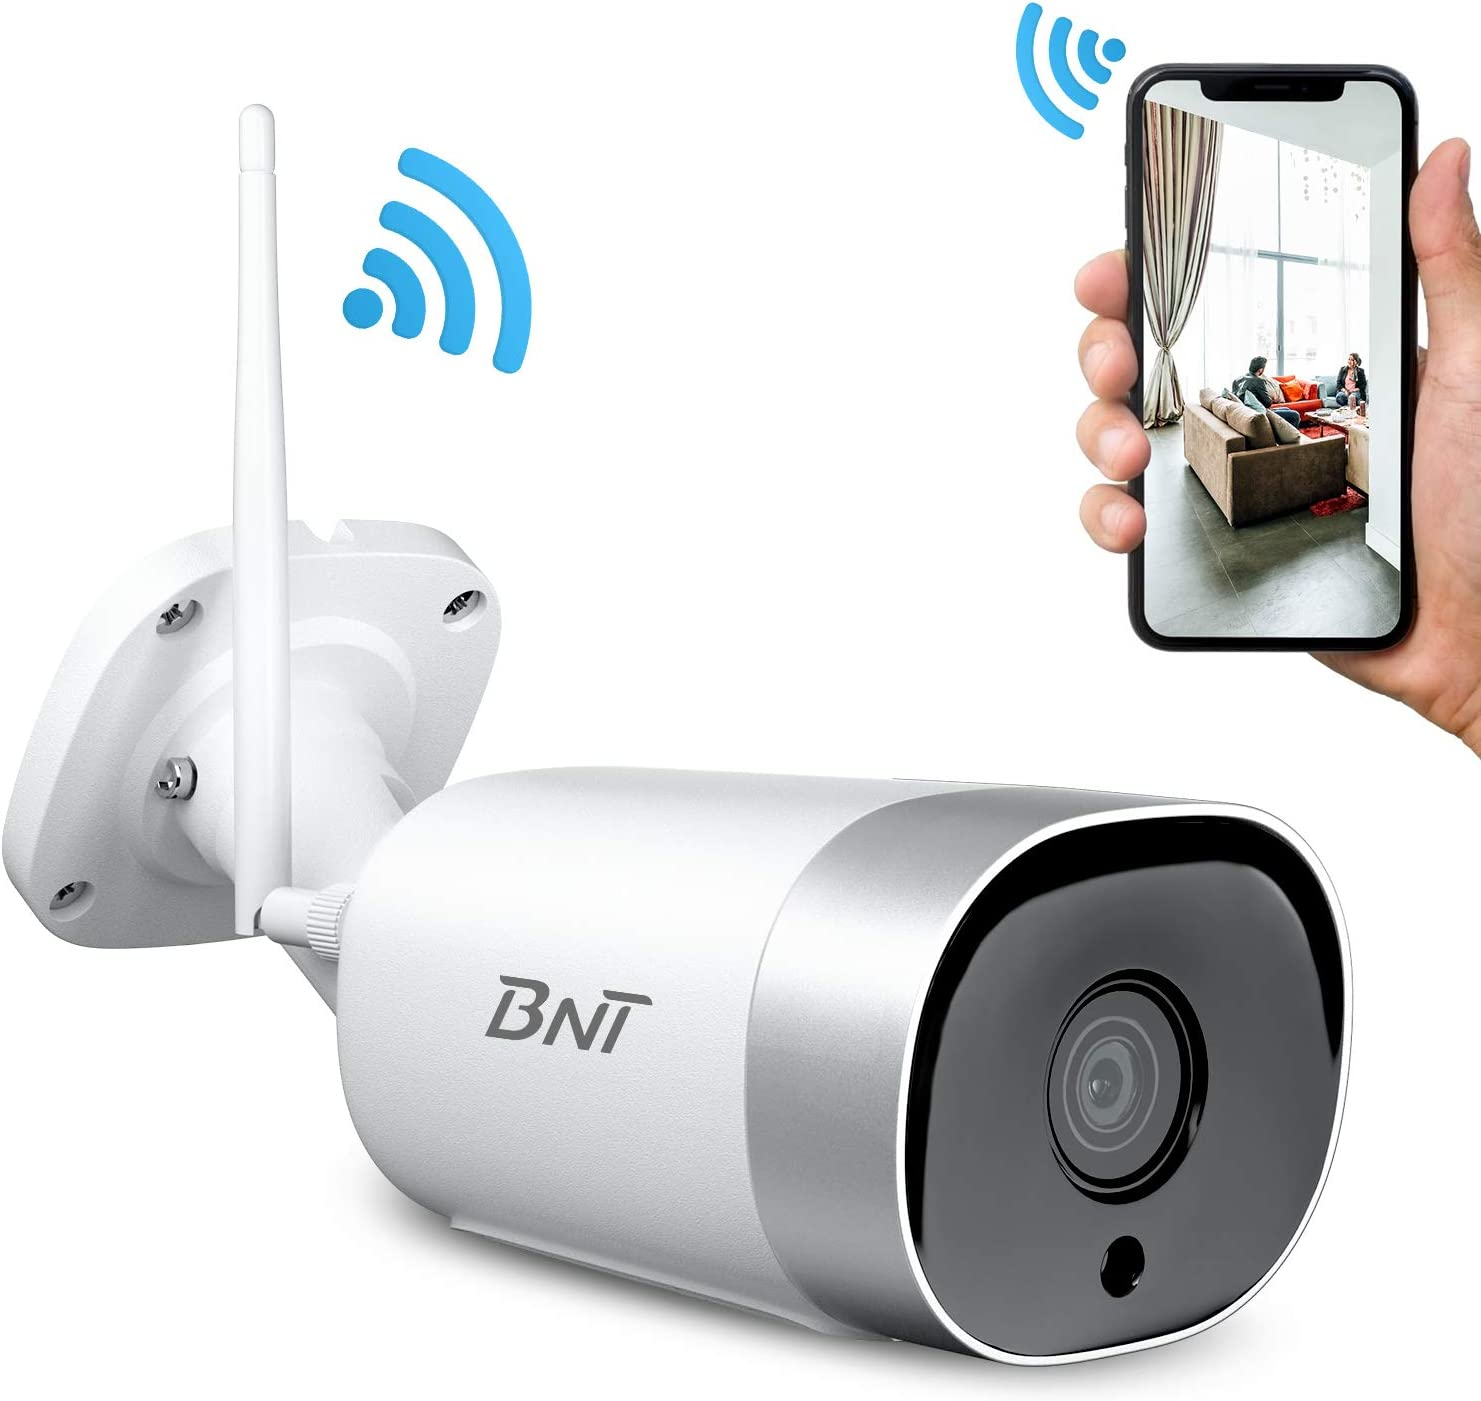 BNT GardenEye Wi-Fi Outdoor Security Camera System, High Score App, 1080P, IP66, Two-Way Audio, Motion Detect and Alert, Night Vision and Cloud Storage